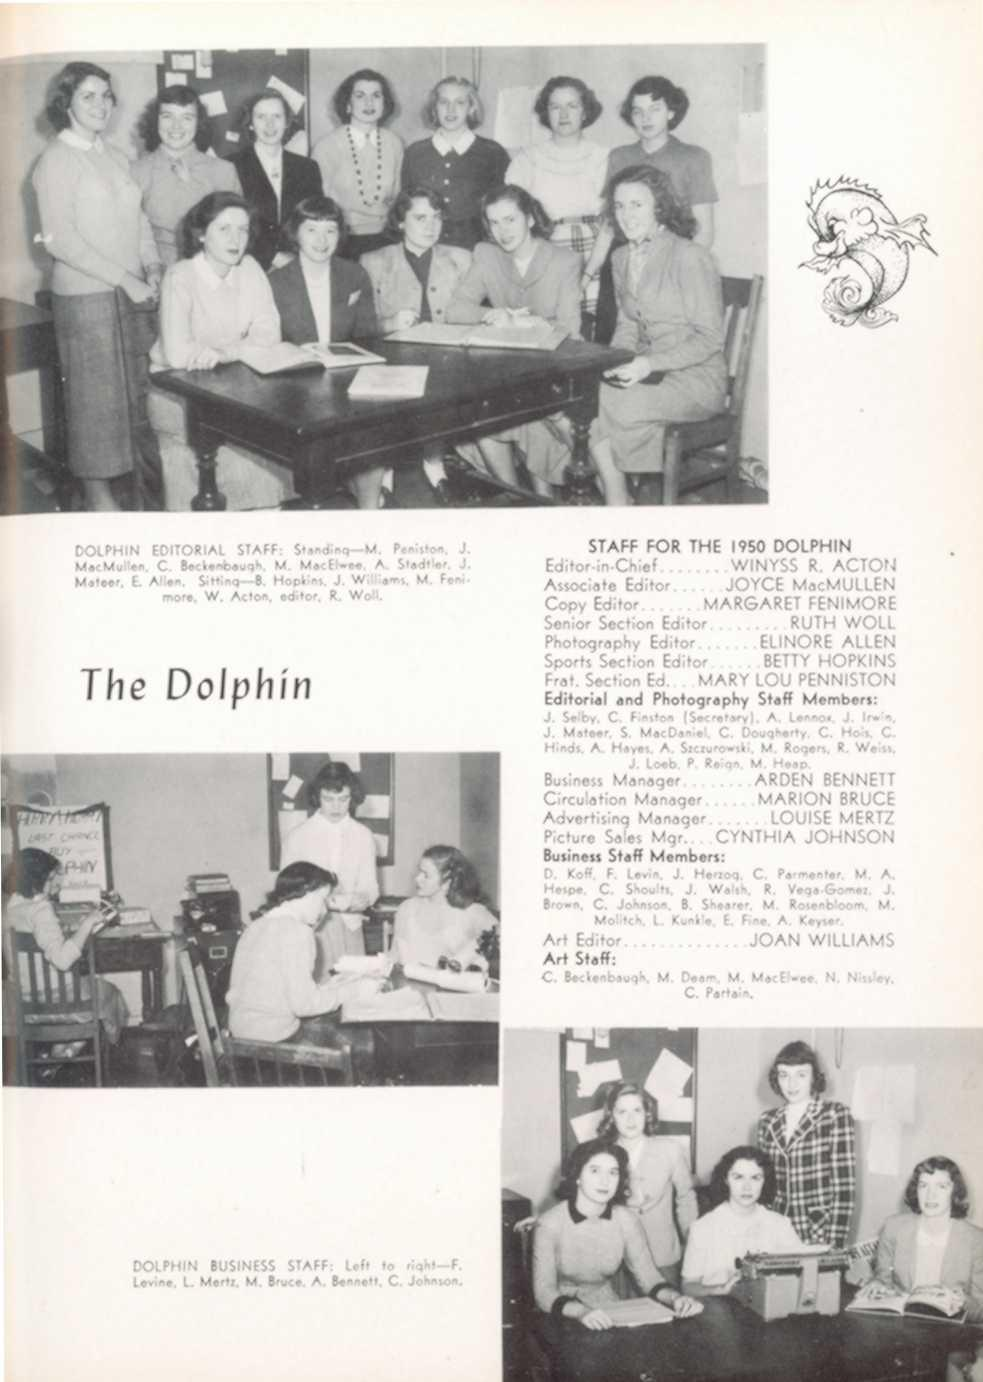 ni DOLPHIN EDITORIAL STAFF : Standing M Peniston MacMullen, C Beckenbaugh, M MacElwee, A Stadt le r, Mattler, E Allen Sitting B Hopkins, J Willia ms, M Fe more, W Acton, editor, R Woll The Dolphi n